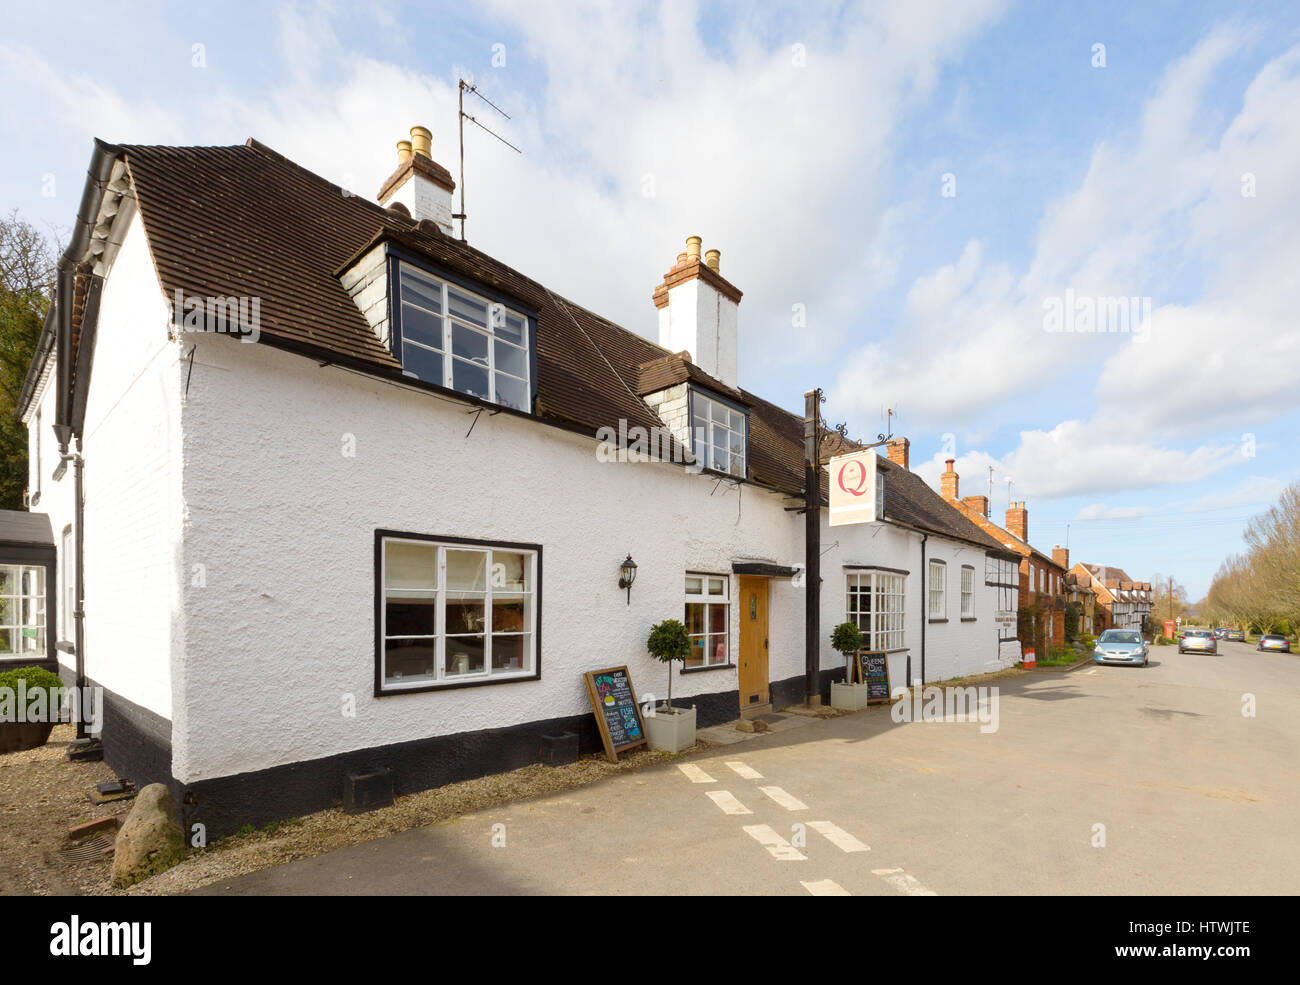 The Queen Elizabeth Inn, Elmley Castle village, Worcestershire England UK - Stock Image